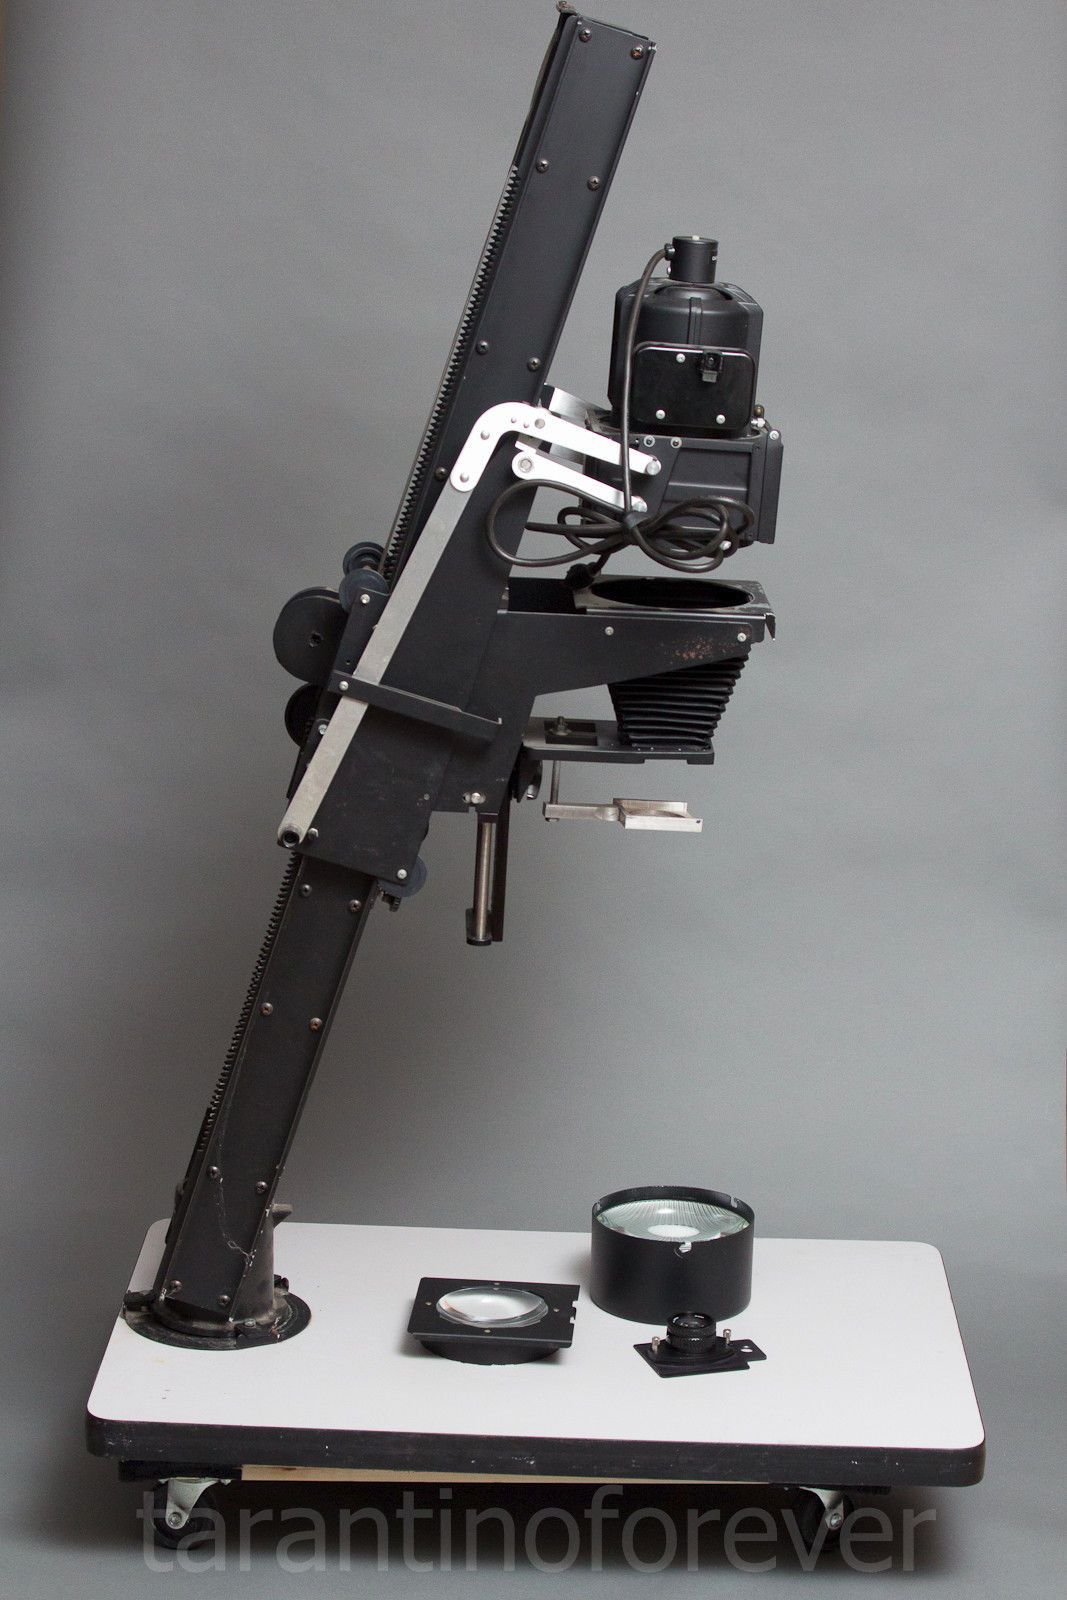 Details about Omega PRO LAB D-6 4X5 PROFESSIONAL Darkroom